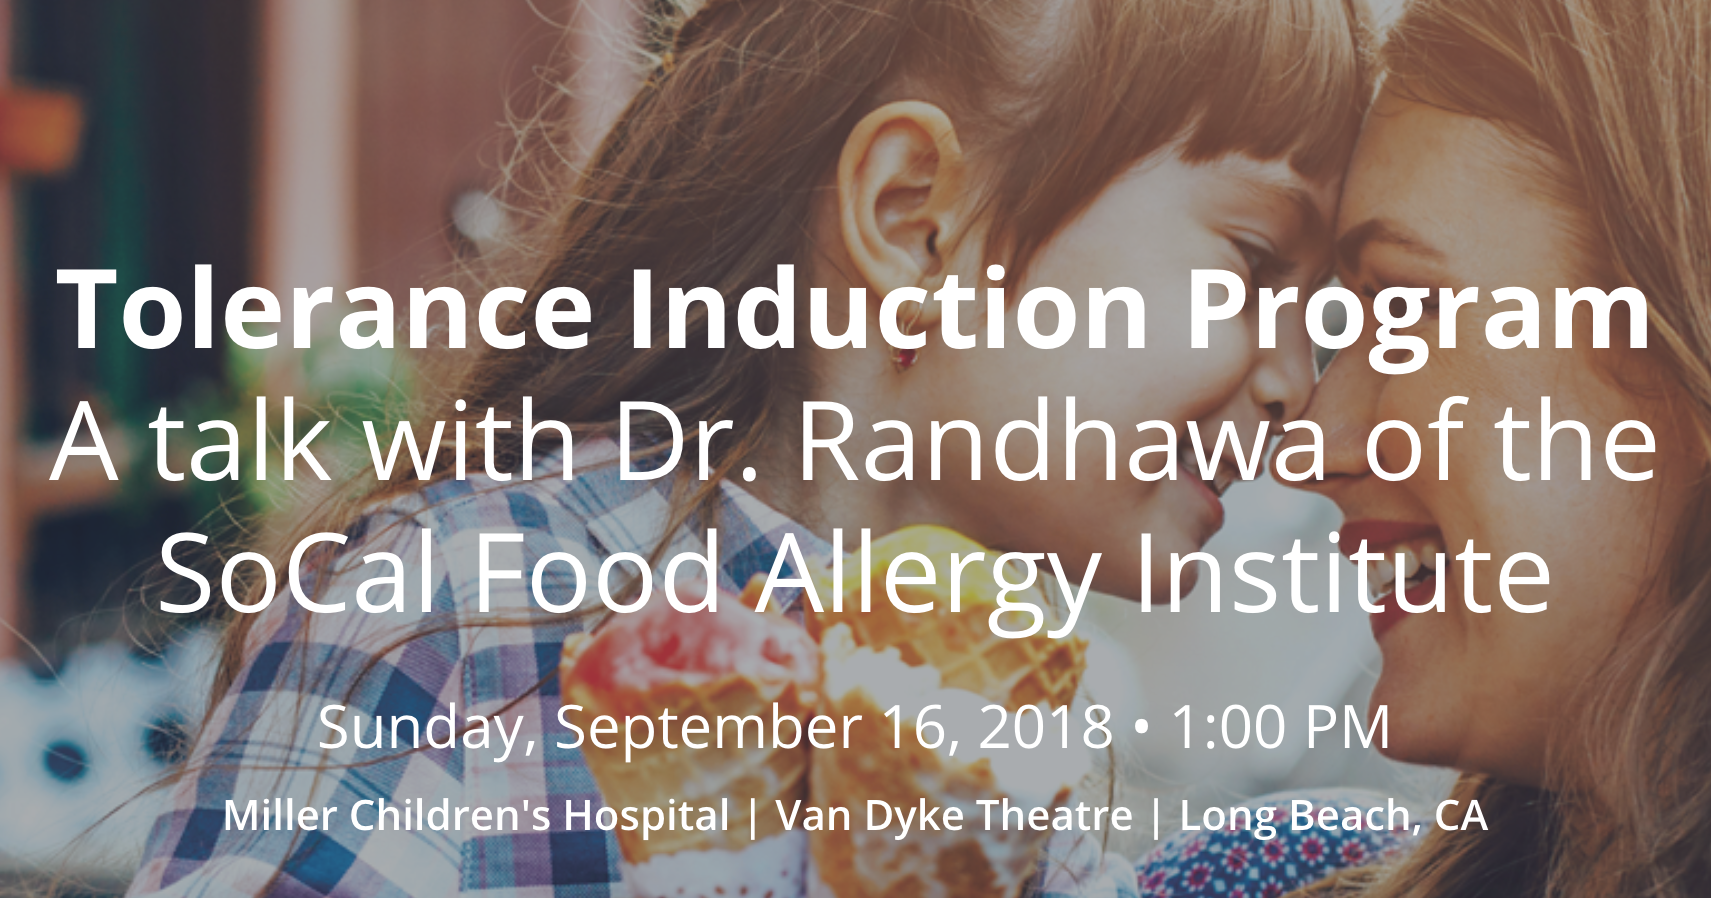 A Talk with Dr  Randhawa -the Tolerance Induction Program